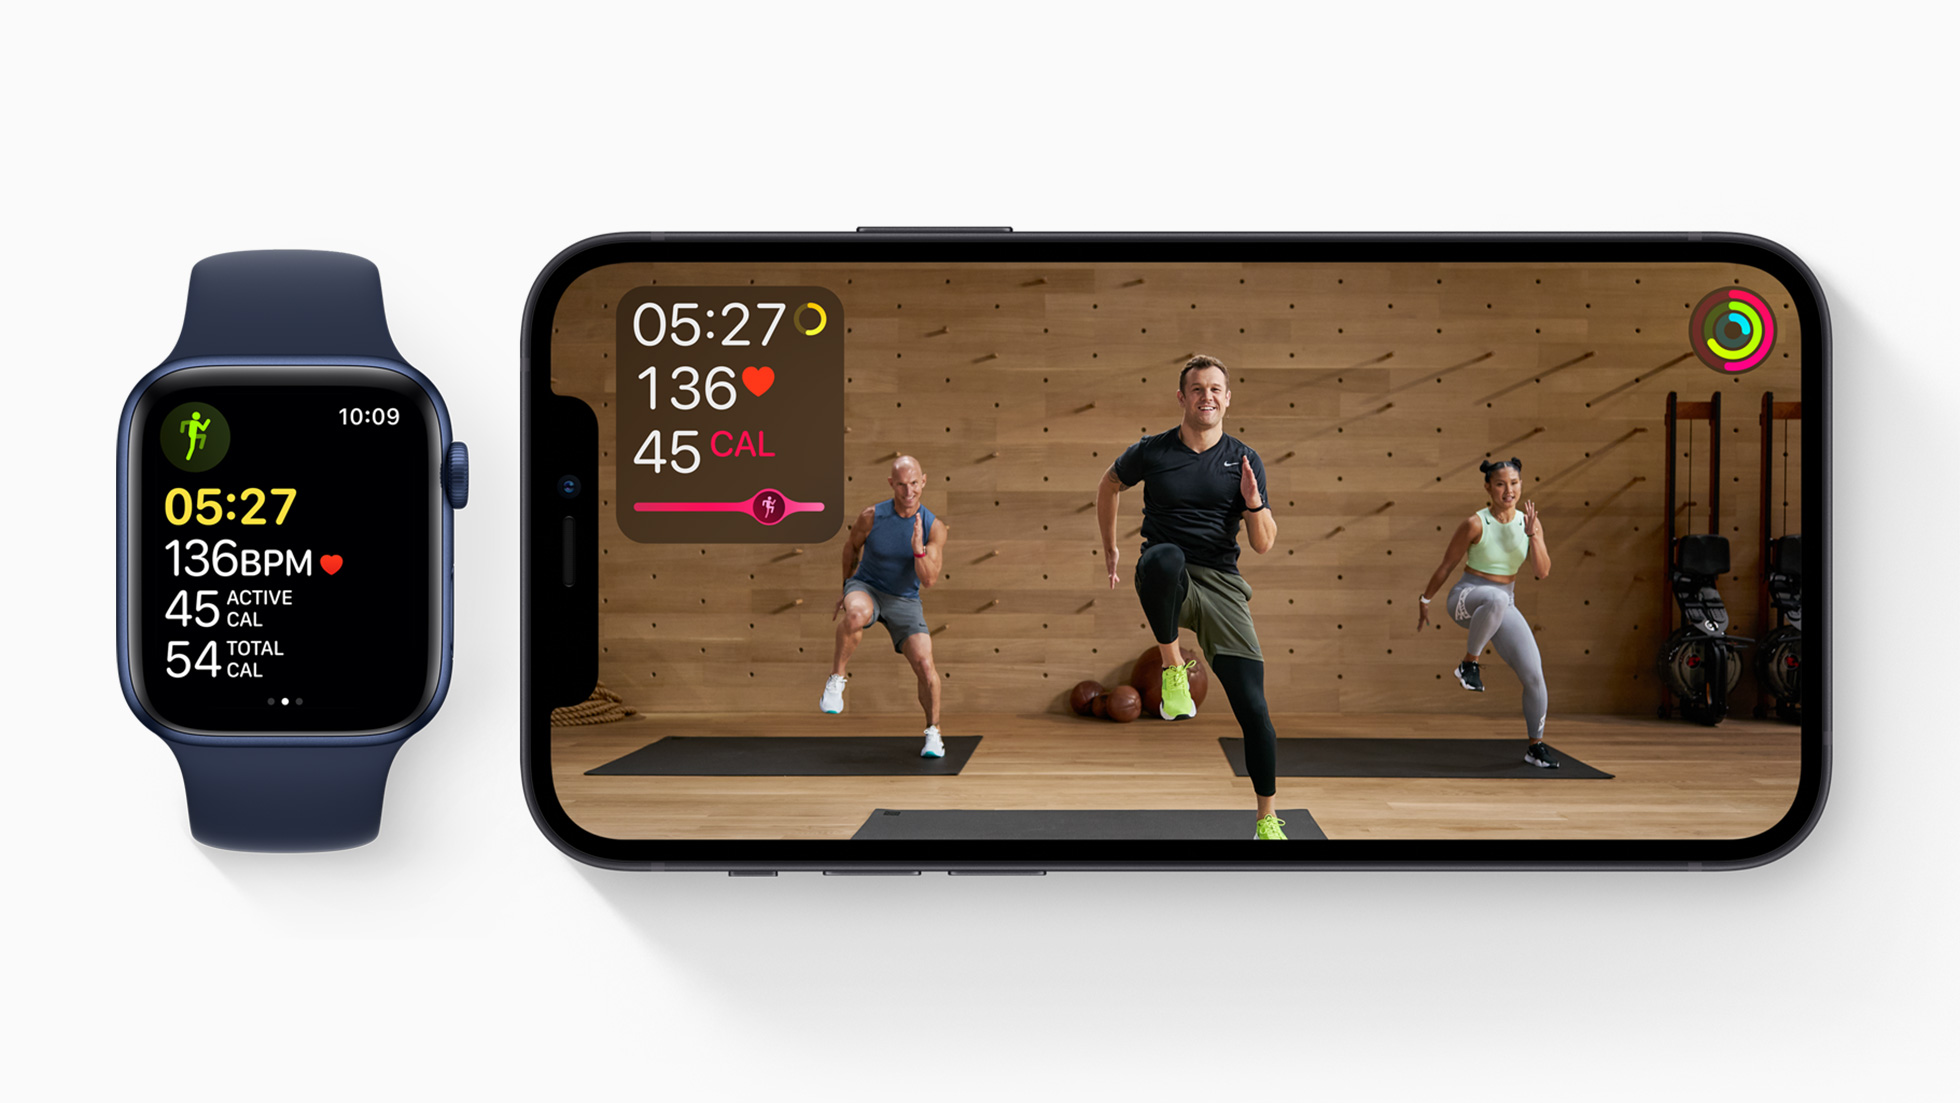 apple watch and apple iPhone with workout program on the screen